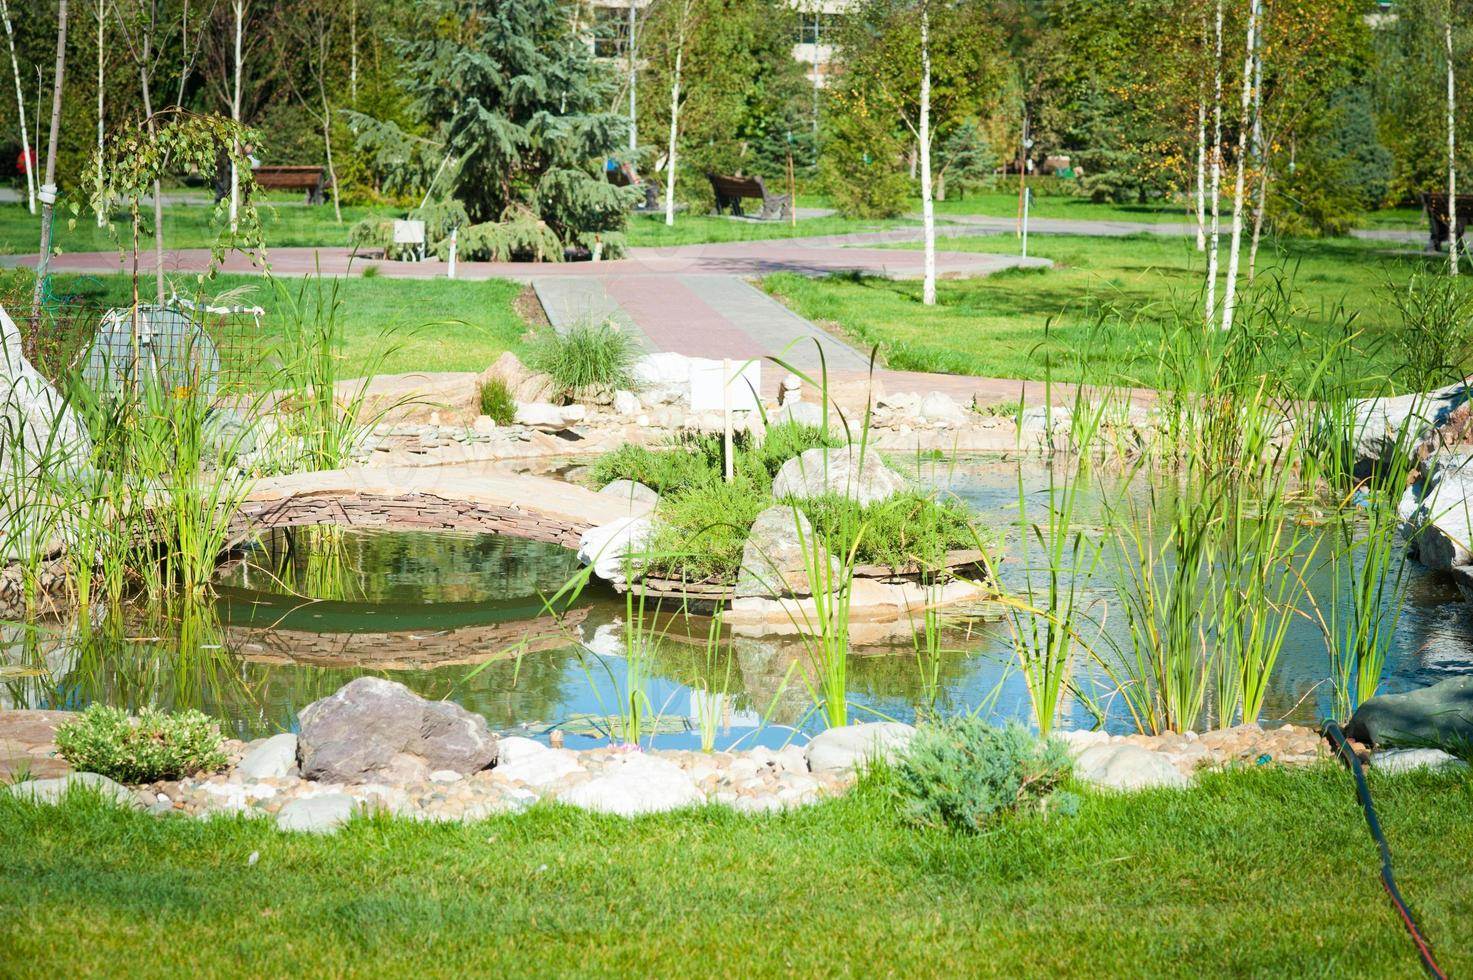 Little pond in the park photo